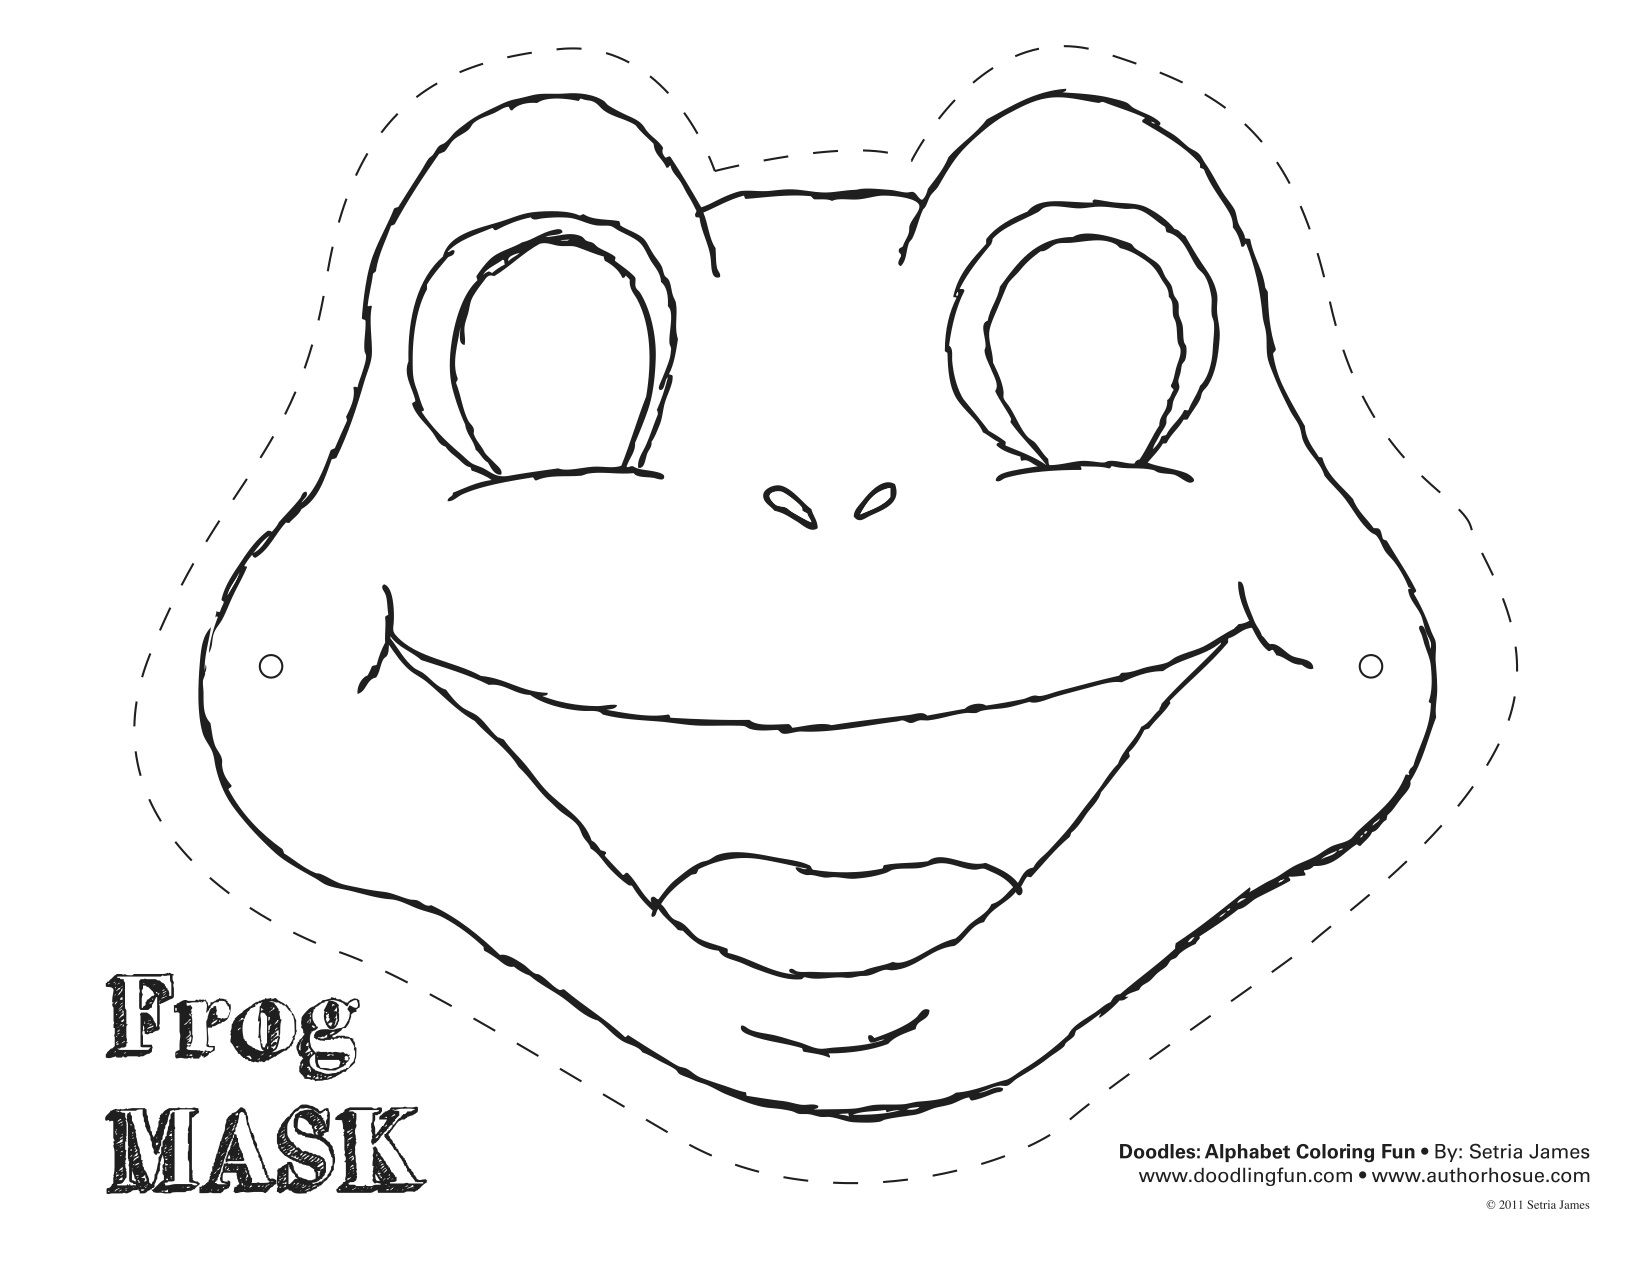 Frog cut out template frog mask colouring pages diykids frog cut out template frog mask colouring pages pronofoot35fo Choice Image